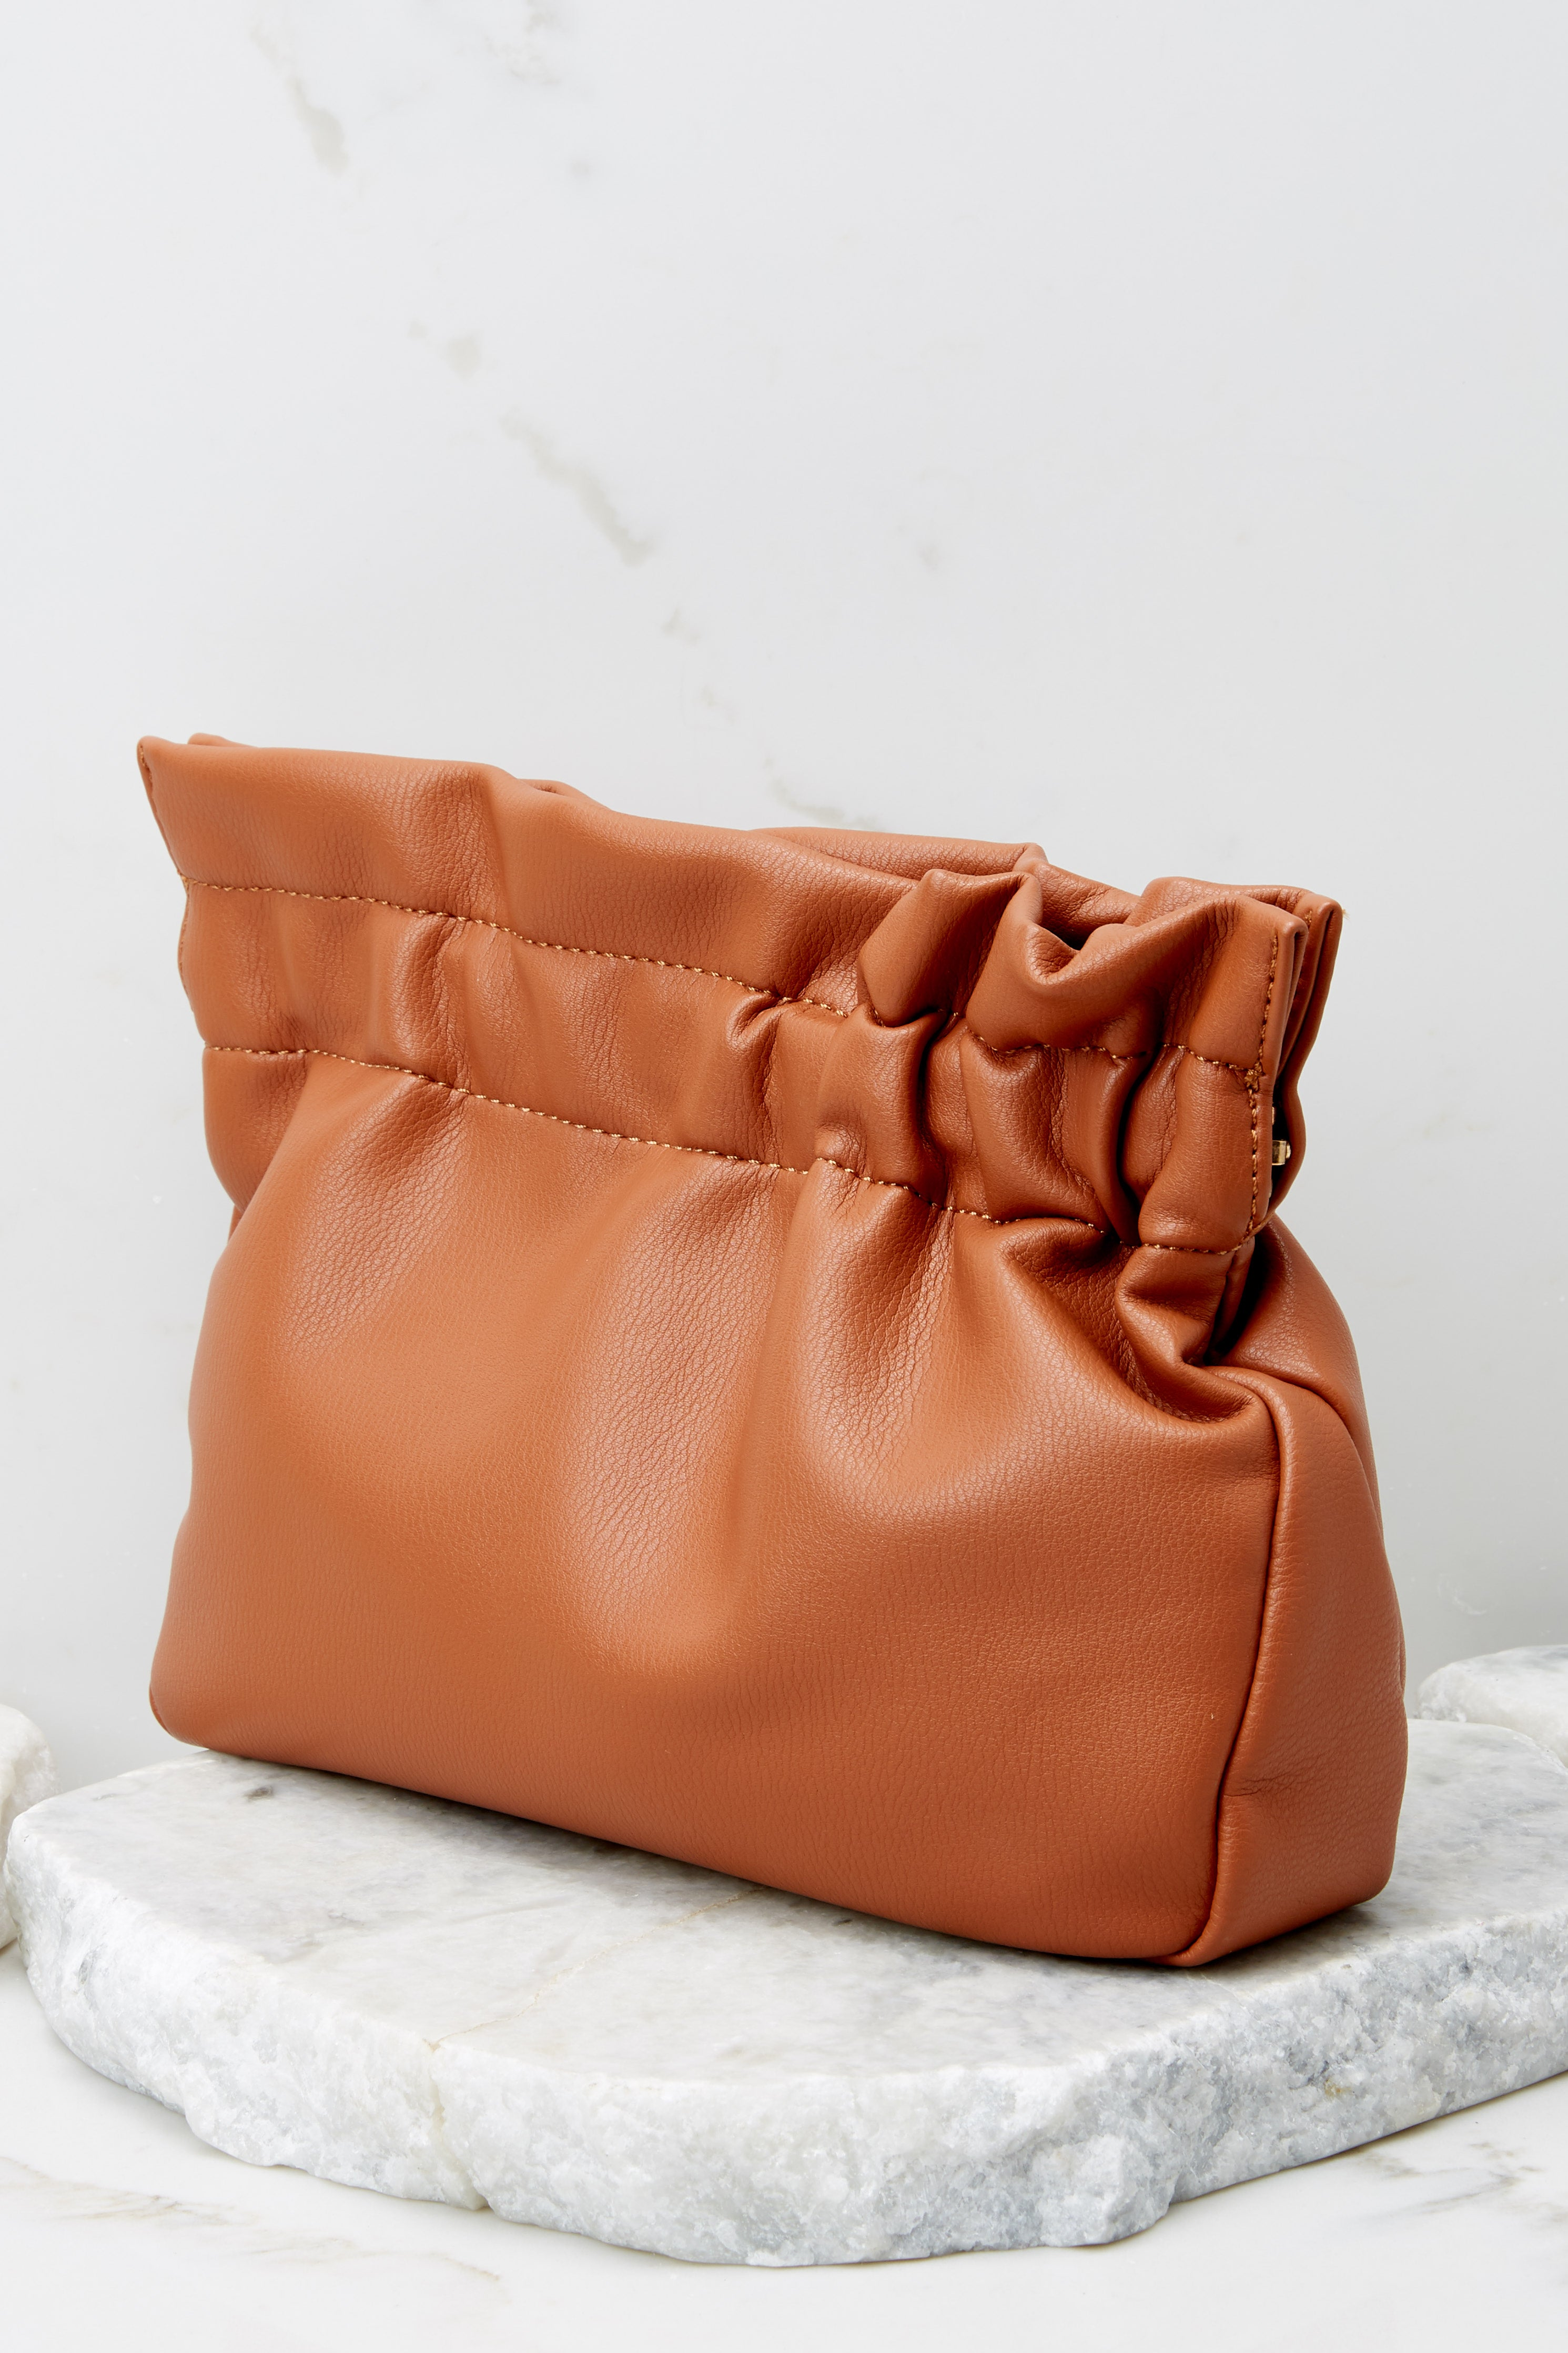 4 The Big Reveal Chestnut Clutch at reddress.com